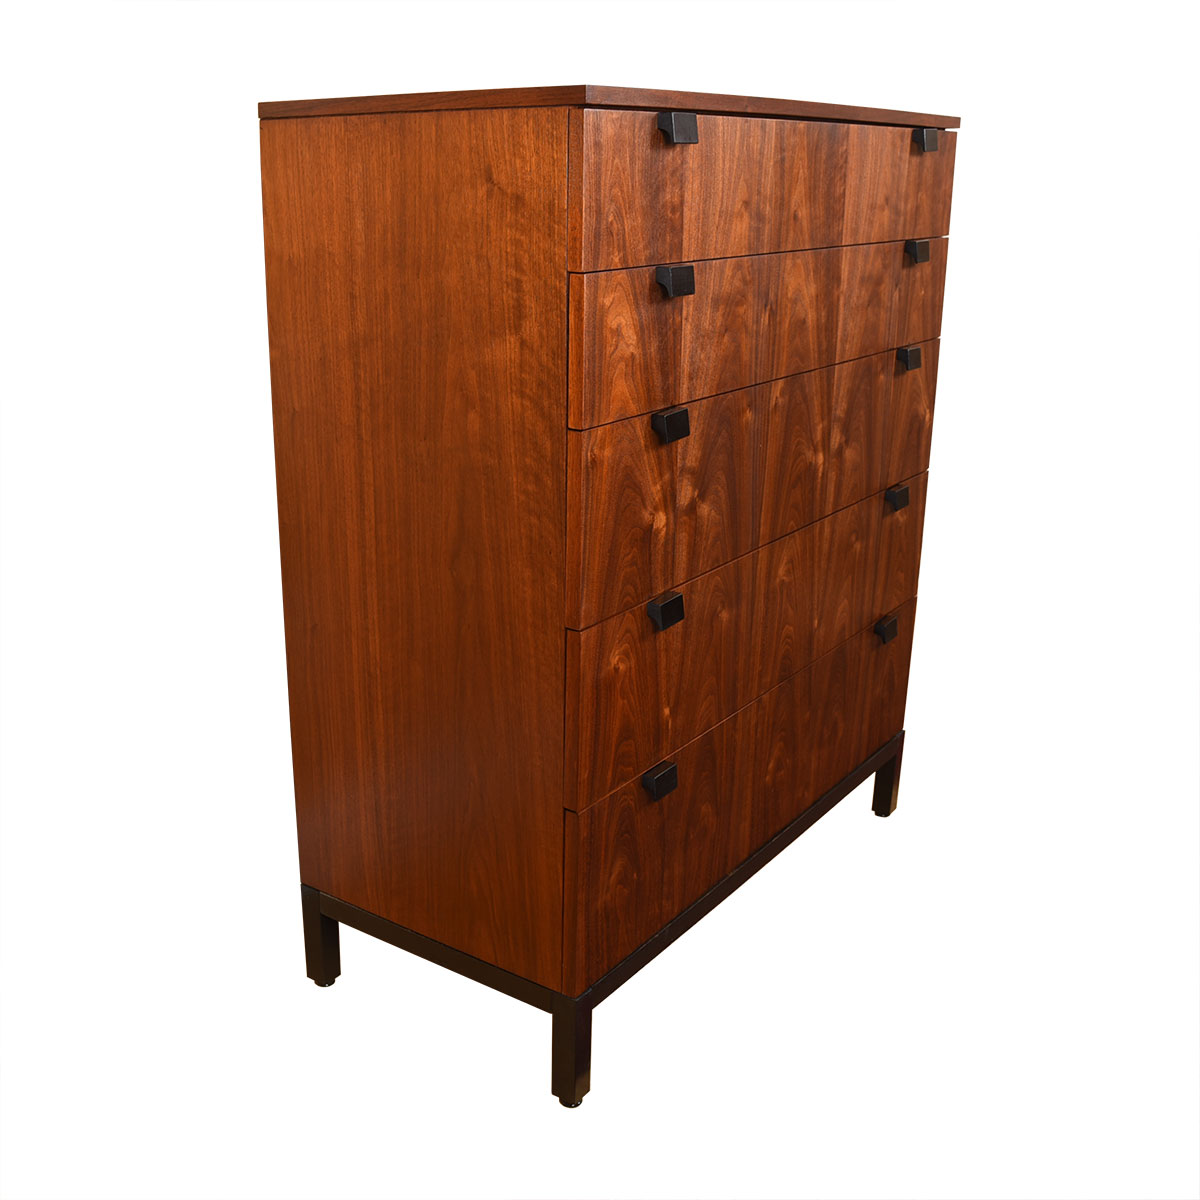 1950's American Modernist Tall Gorgeous Walnut Dresser